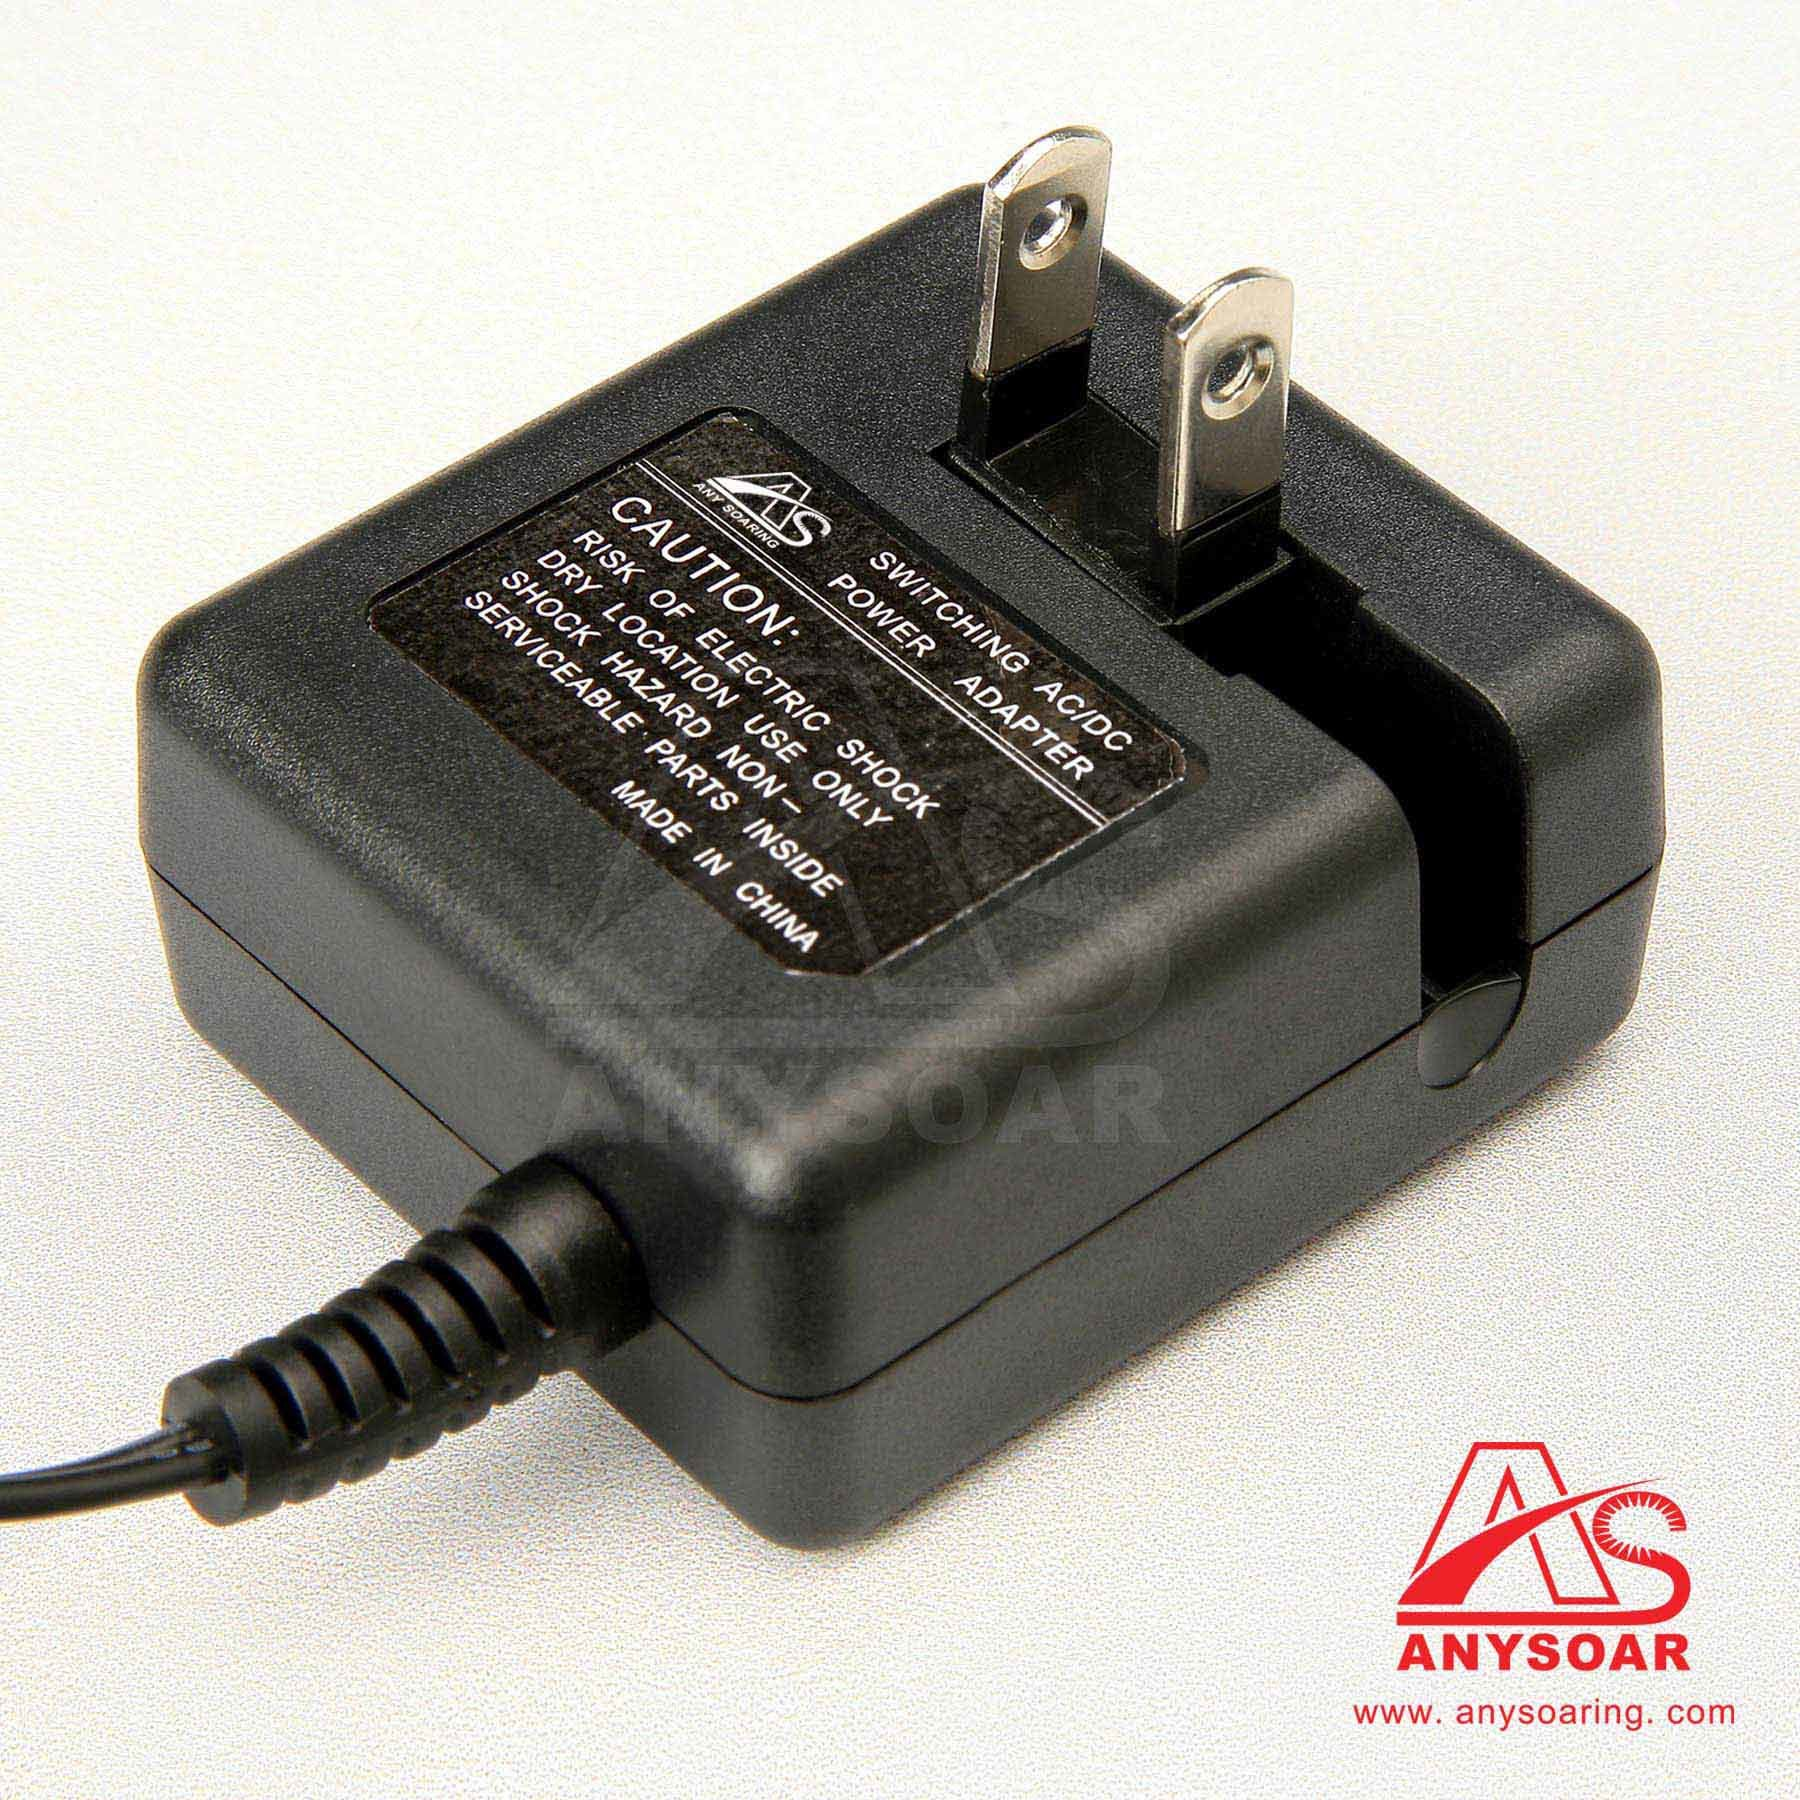 ac dc power supply Reliable ac-dc power supplies you can trust our ac-dc power supplies are developed by experienced product designers and manufactured in iso 9001 accredited facilities with a proven record of reliability.